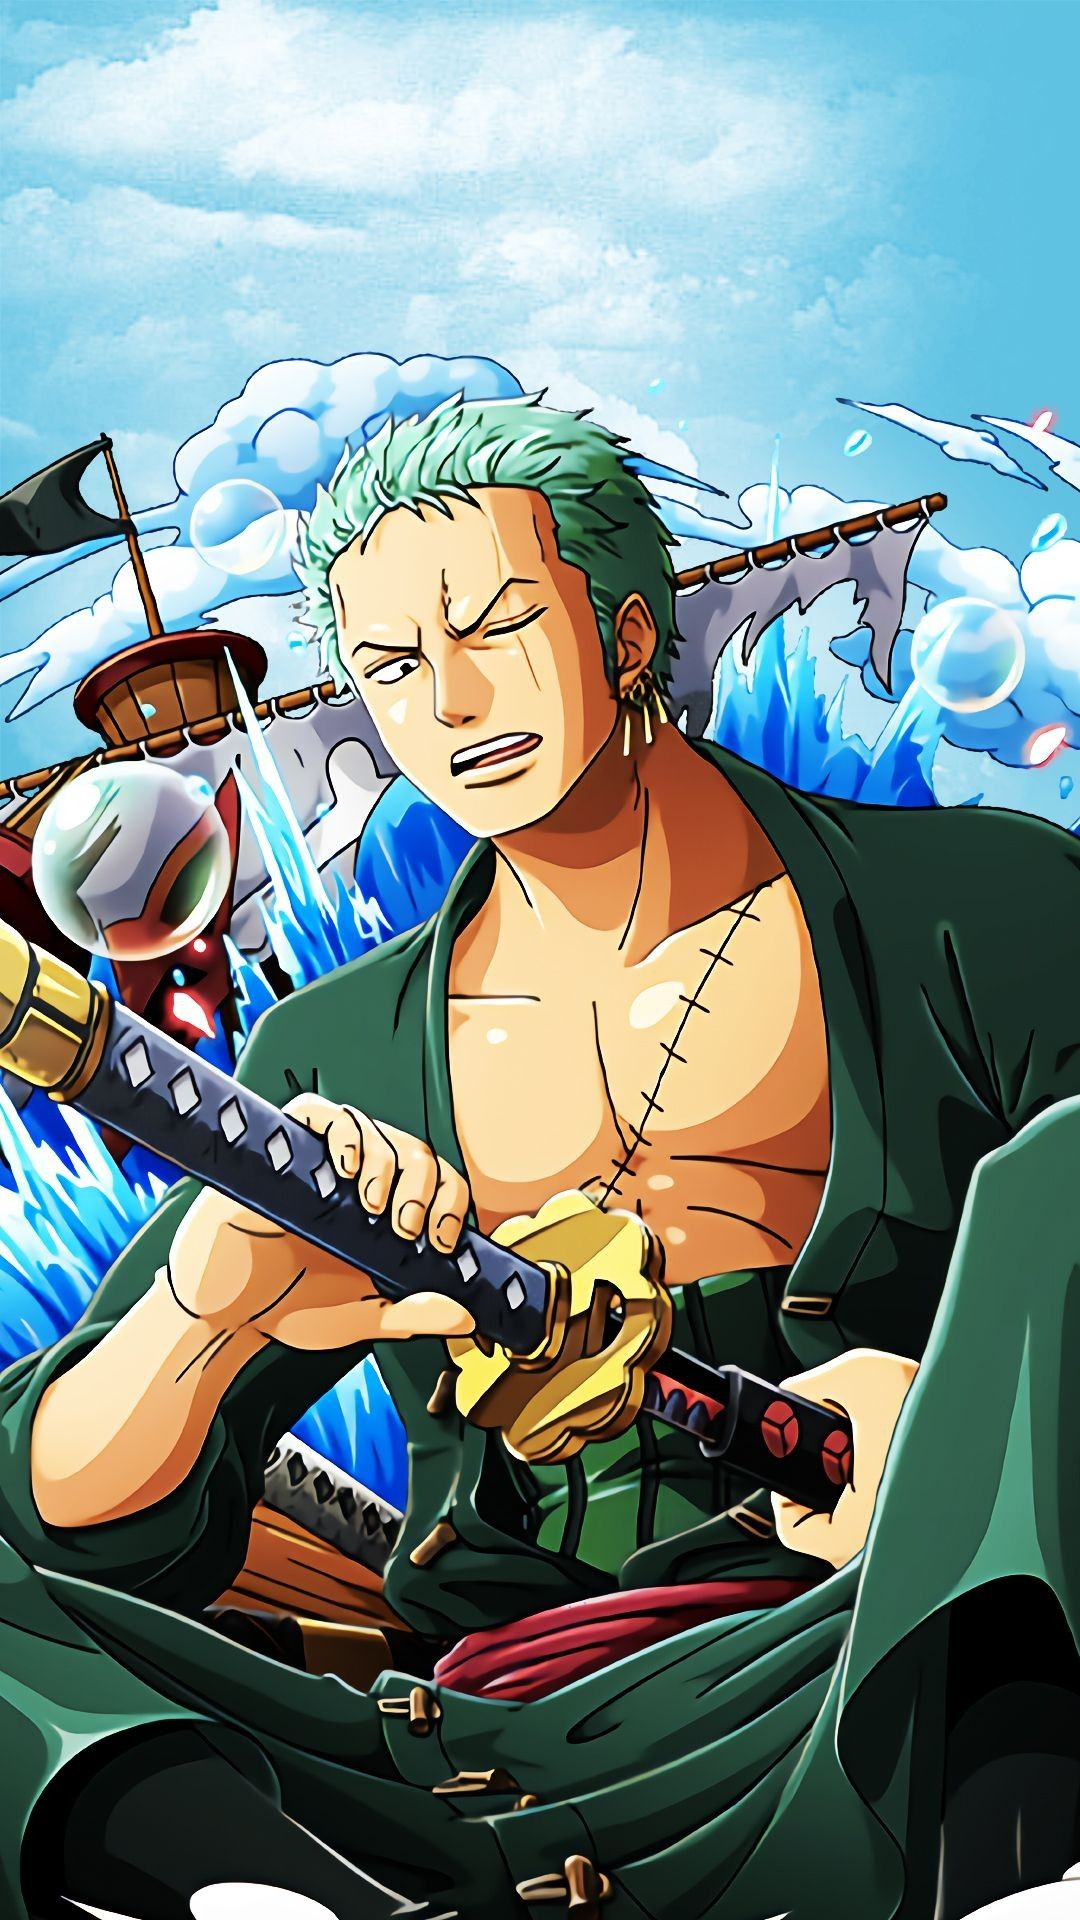 Iphone X Xr Xs 6 7 8 Plus Soft Tpu Rubber Case With Clear Back Roronoa Zoro One Piece Wallpaper Iphone One Piece Manga Zoro One Piece